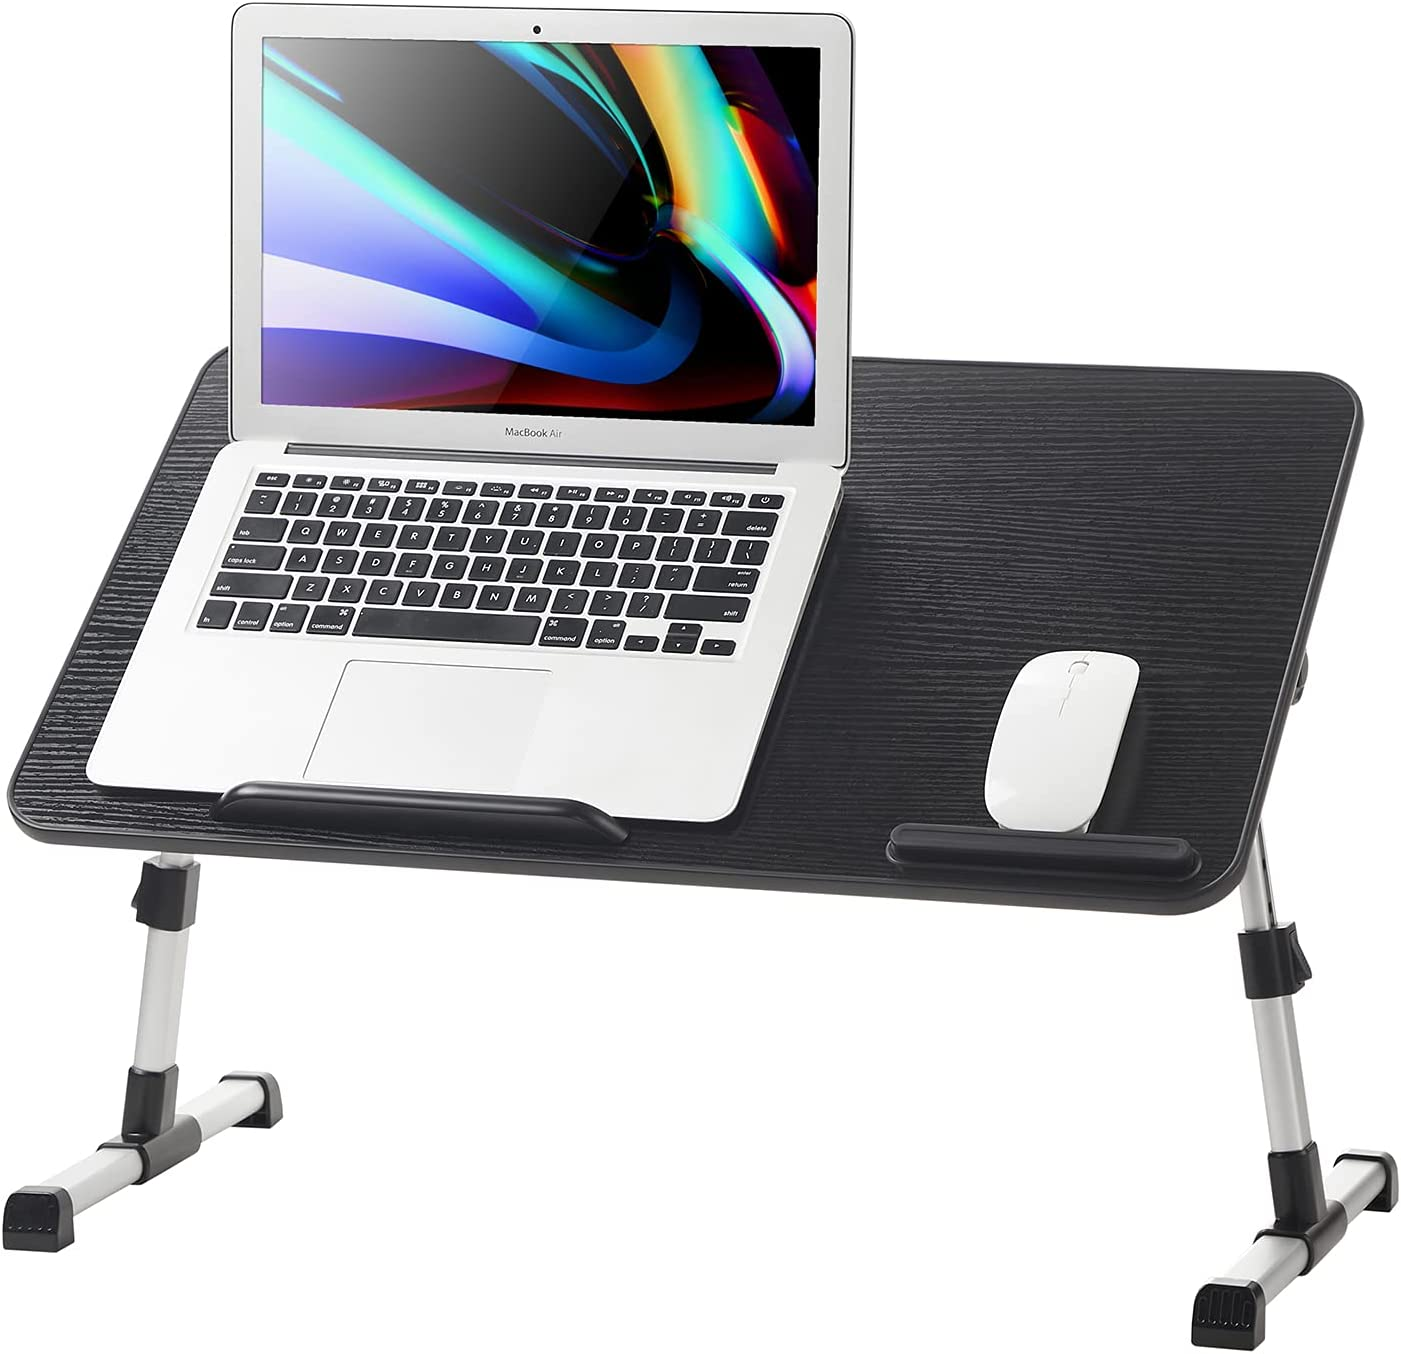 Laptop Sale Desk for Bed Popular product JIDUO with Adjustable Tray Stand